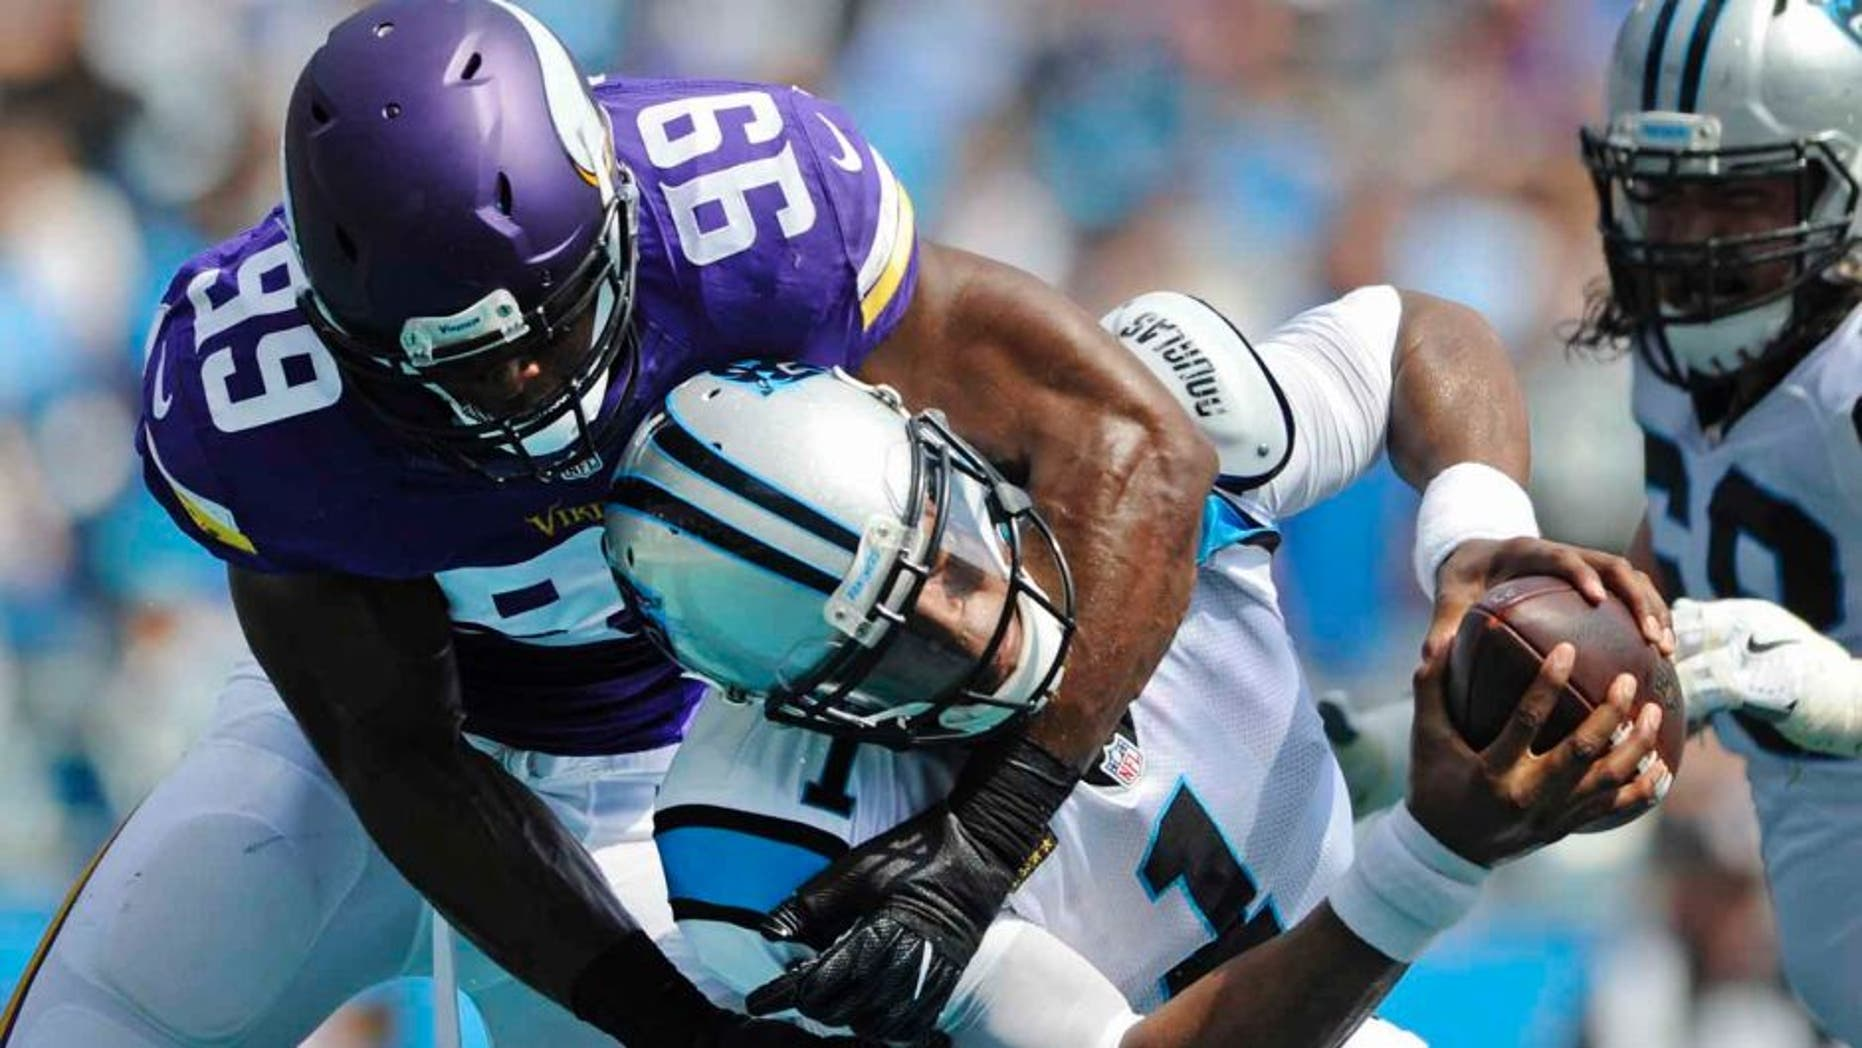 The Carolina Panthers' Cam Newton is sacked in the end zone for a safety by the Minnesota Vikings' Danielle Hunter in the first half in Charlotte, N.C., Sunday, Sept. 25, 2016.